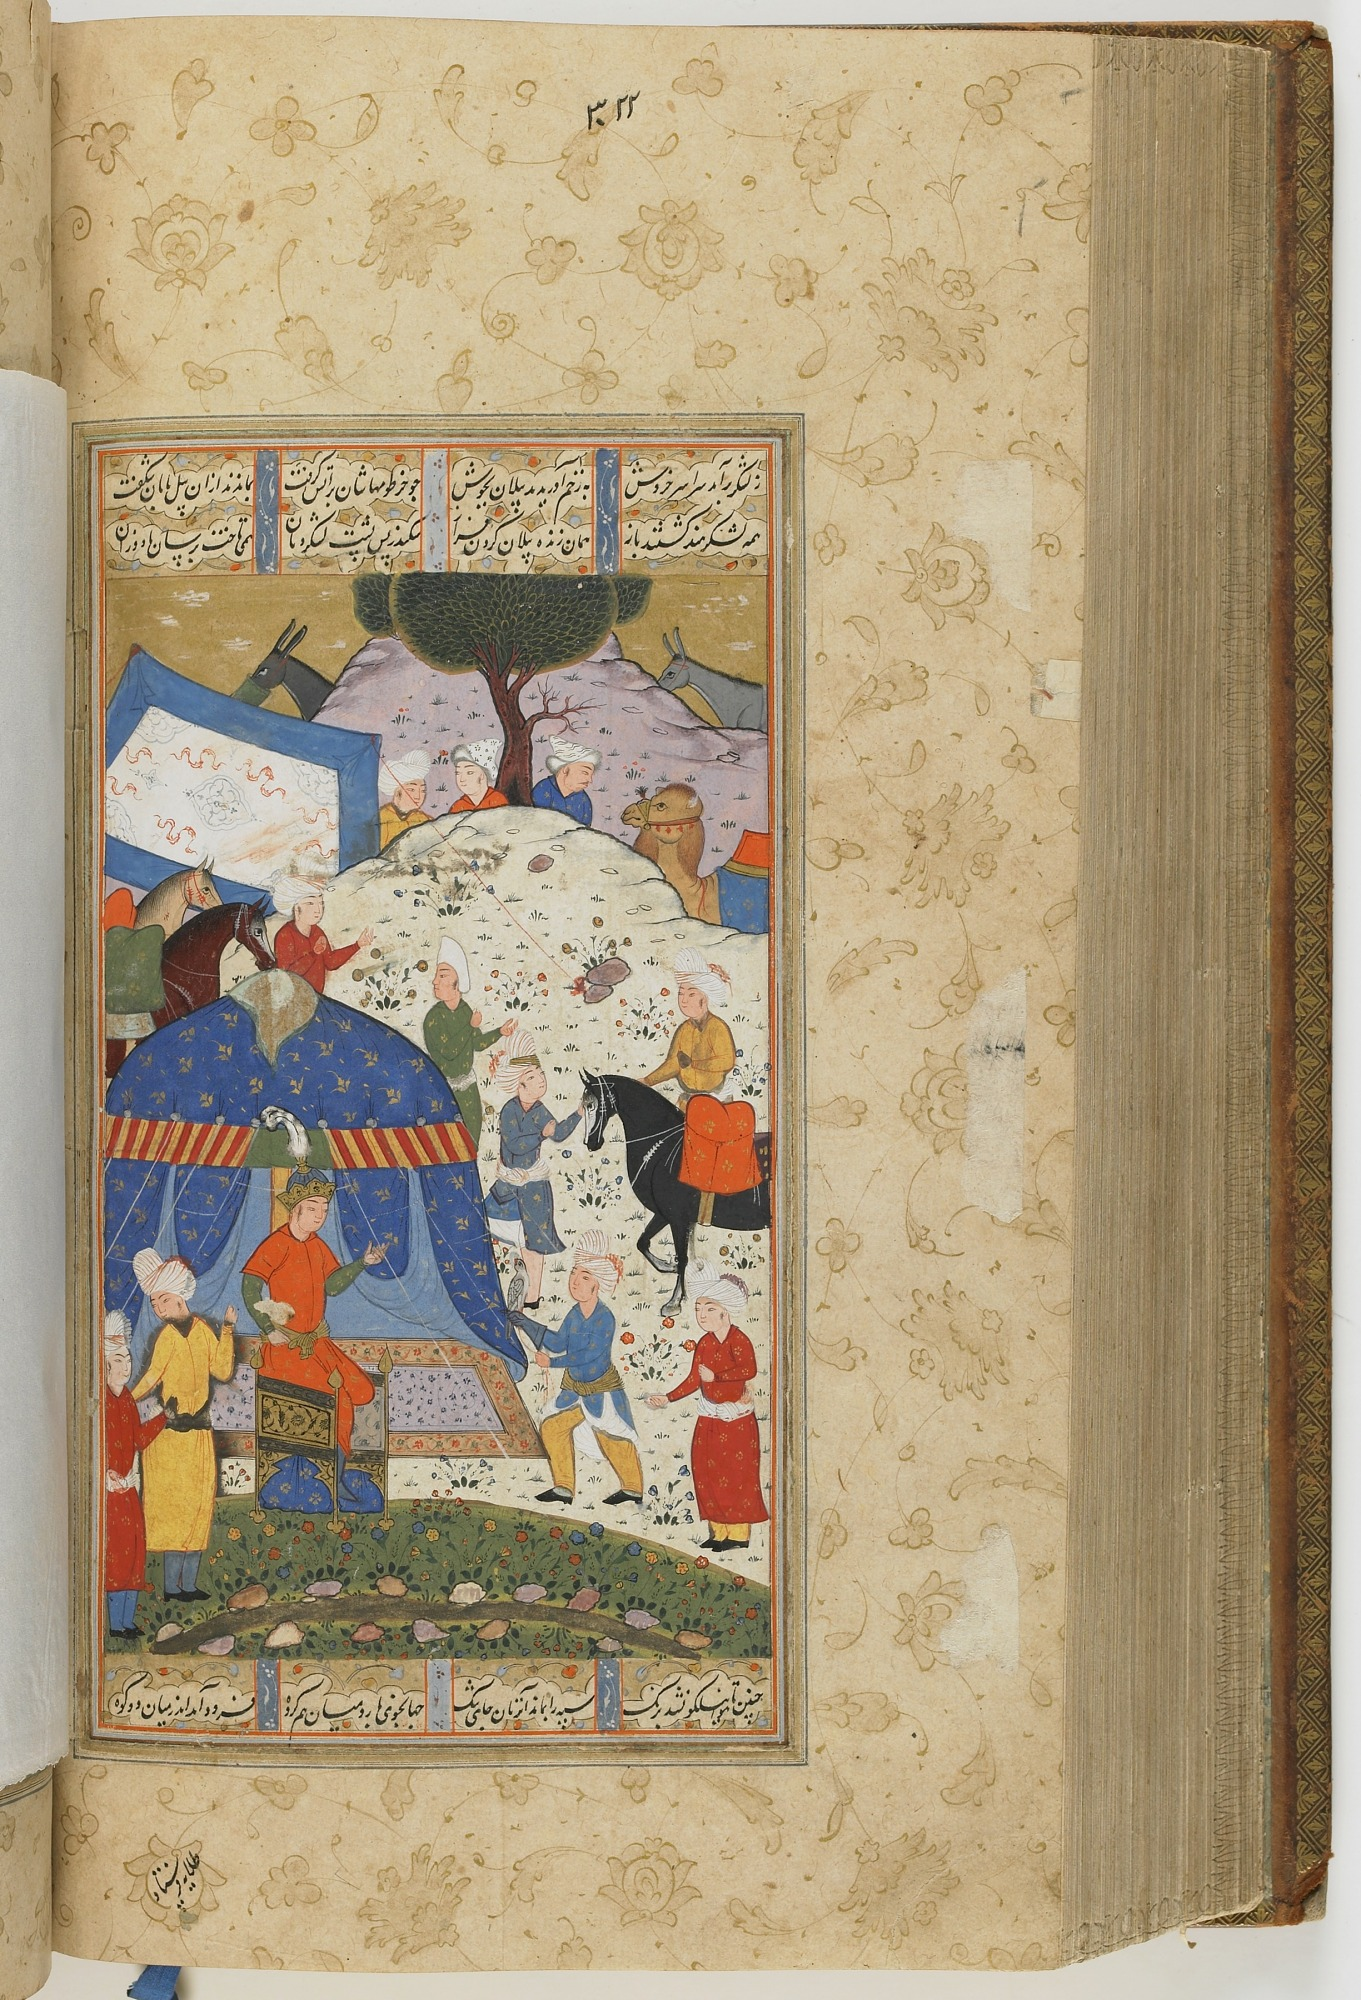 folio 323 verso: The Shahnama (Book of kings) by Firdausi (d. 1020)